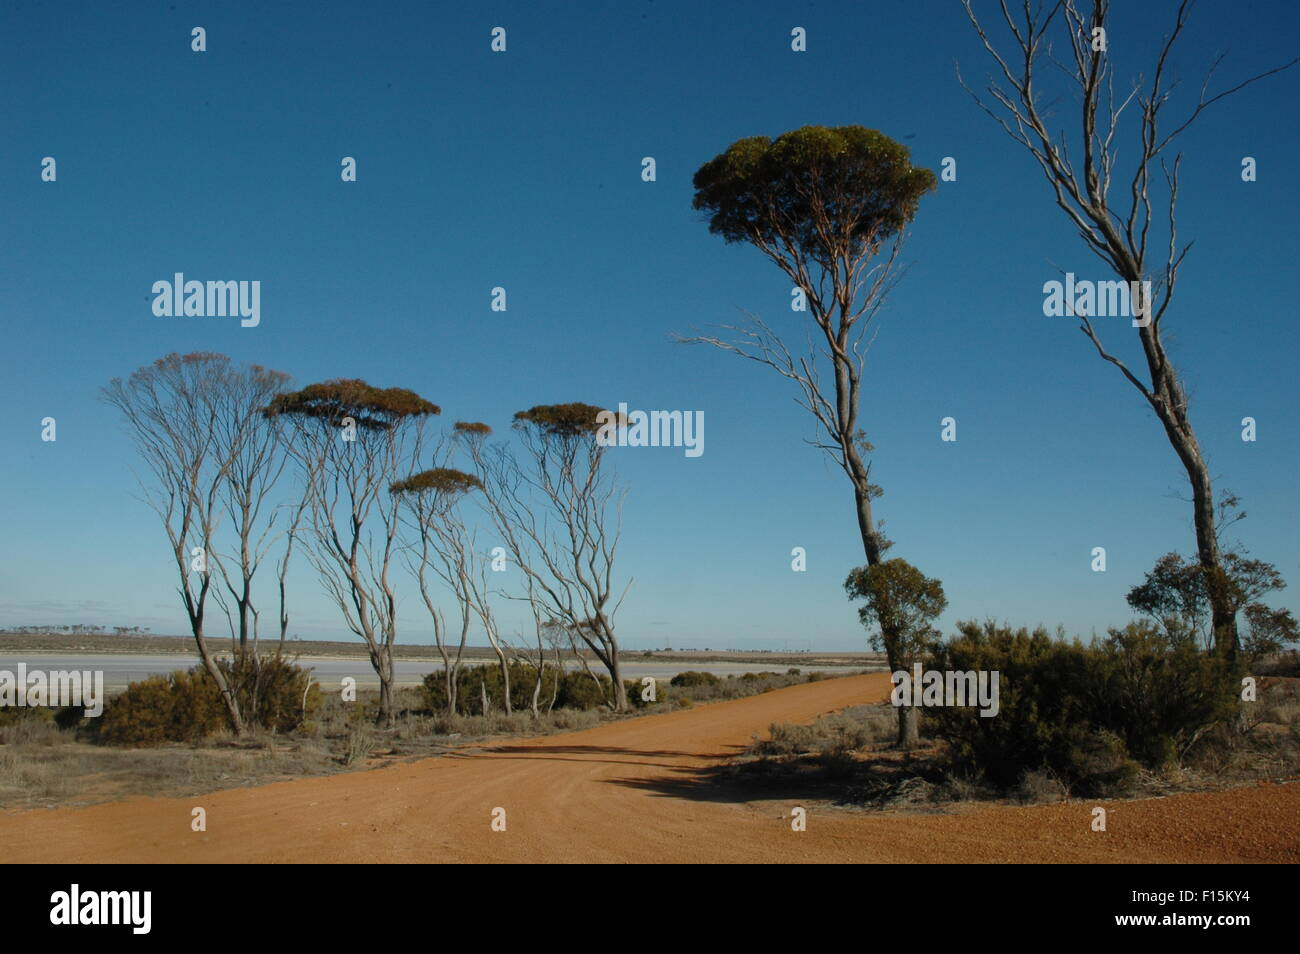 Western Australia Outback, Highway, Hyden to Albany - Stock Image